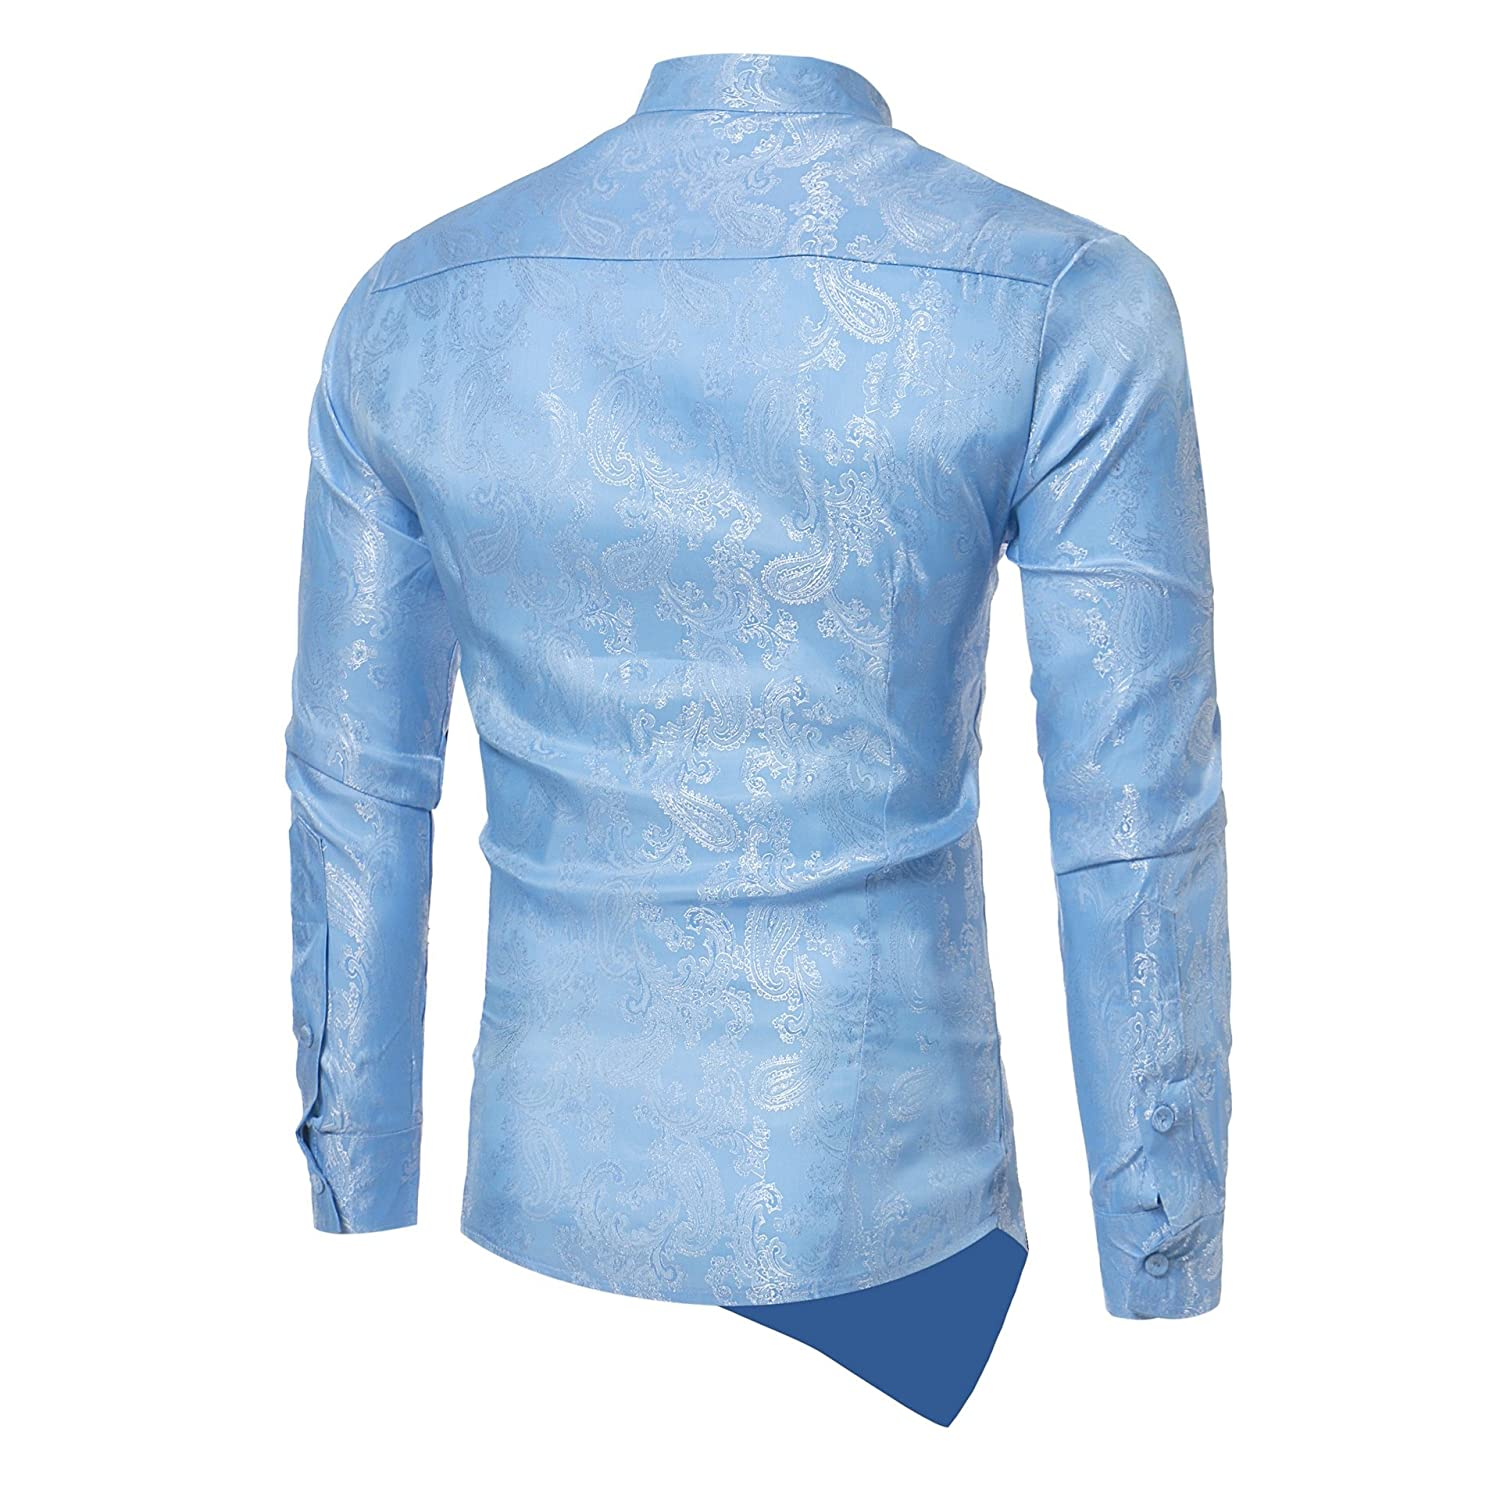 YUNY Mens Hipster Casual Slim Long Sleeve Button Down Dress Shirts Tops with Embroidery Light Blue XS